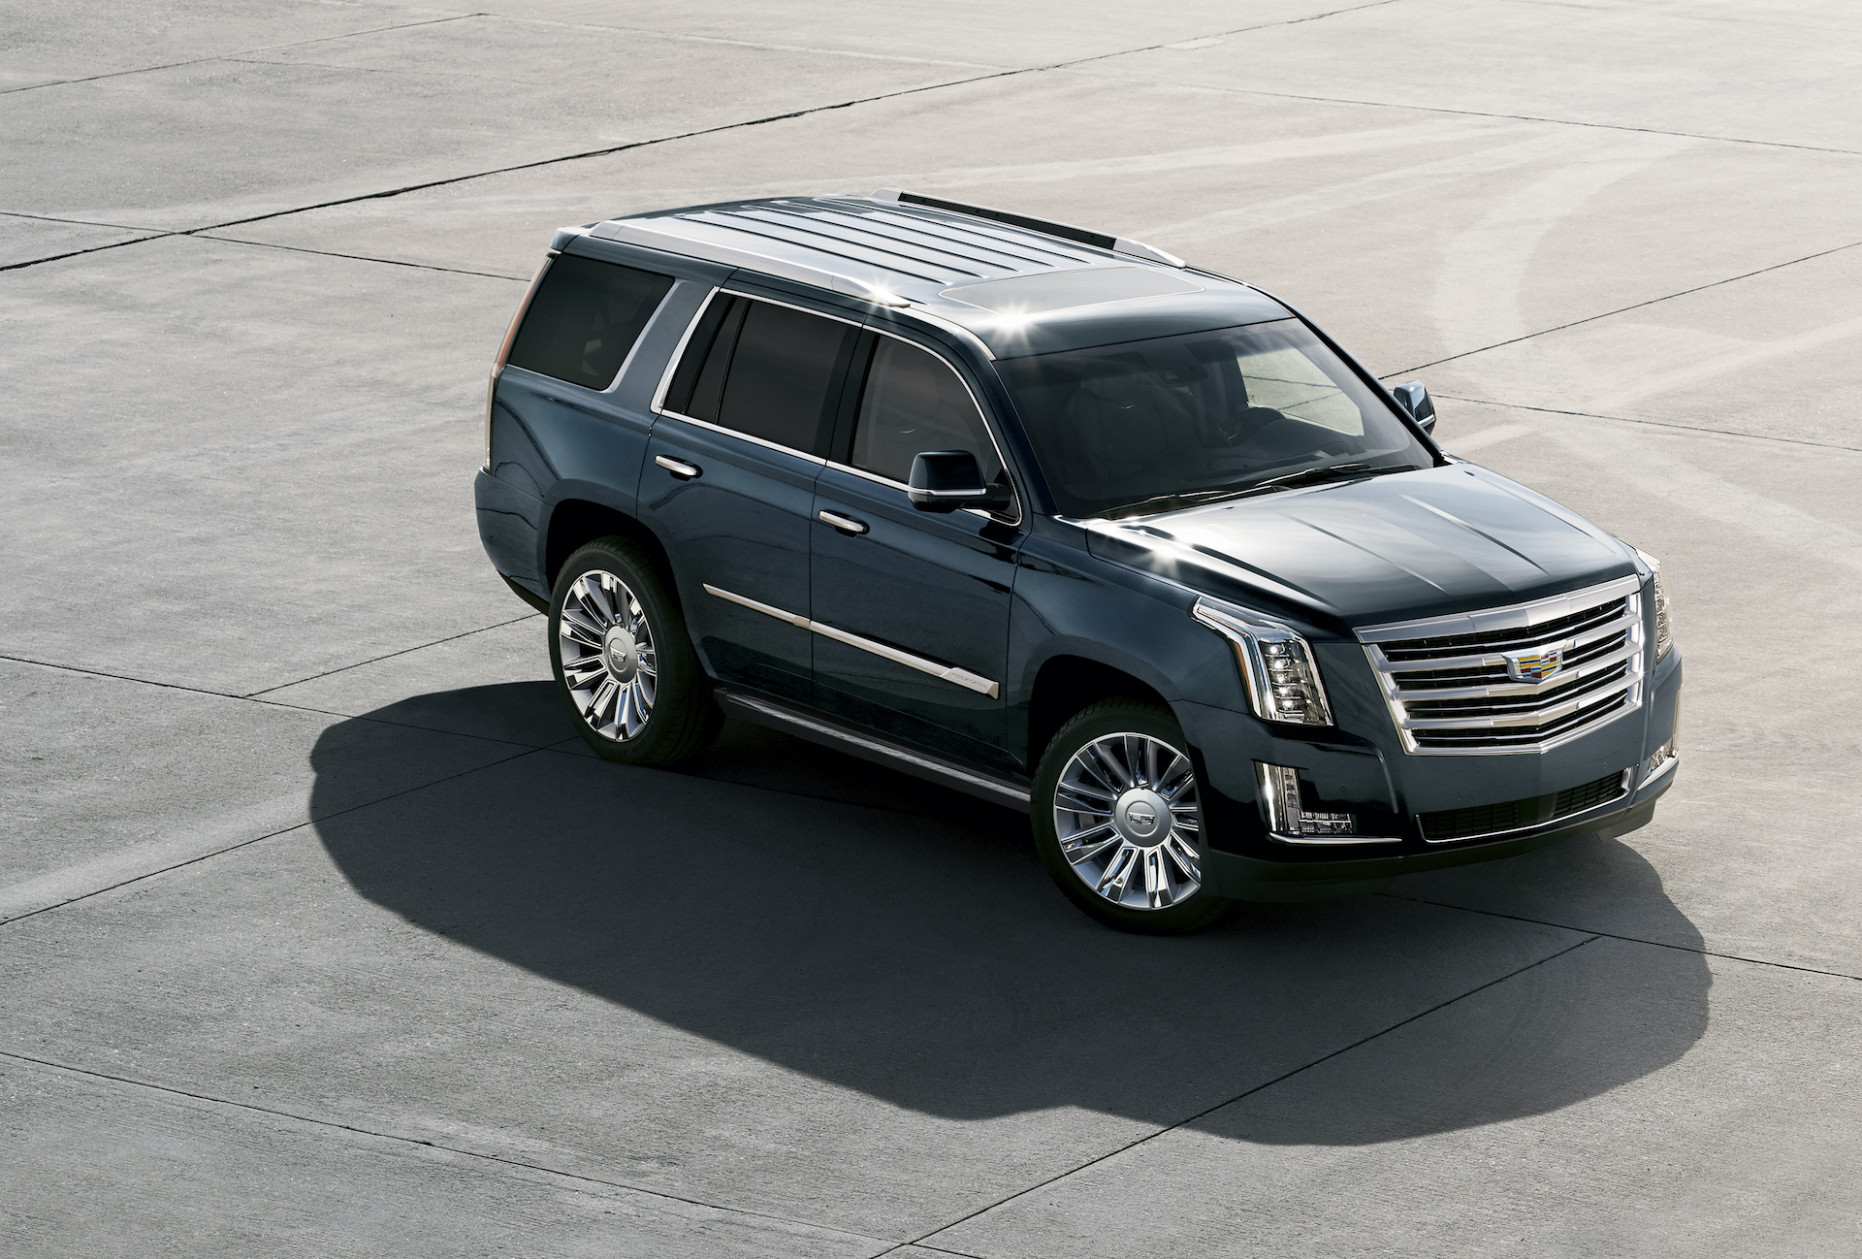 6 Cadillac Escalade Review, Ratings, Specs, Prices, and Photos ..